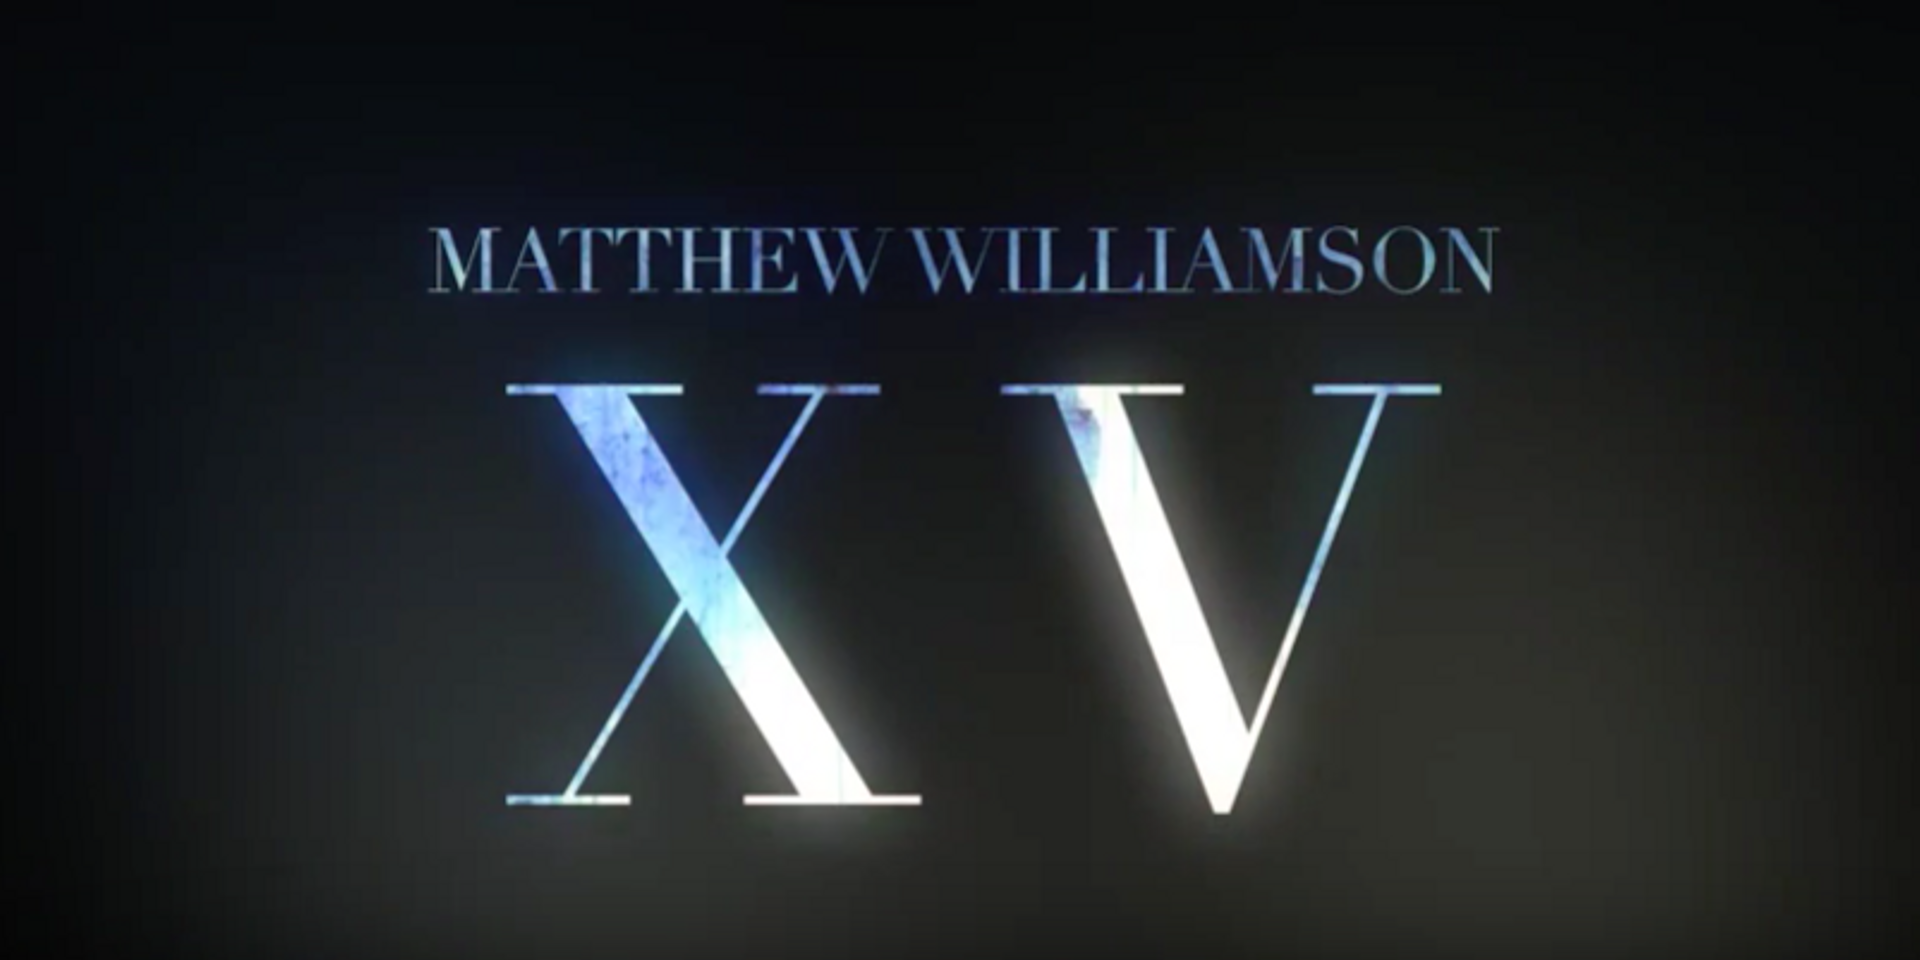 Matthew Williamson 15 Years in Fashion Anniversary Video  Make-up by Jaysam Barbosa for Matthew Williamson & Poppy Delevingne assisting Lancome